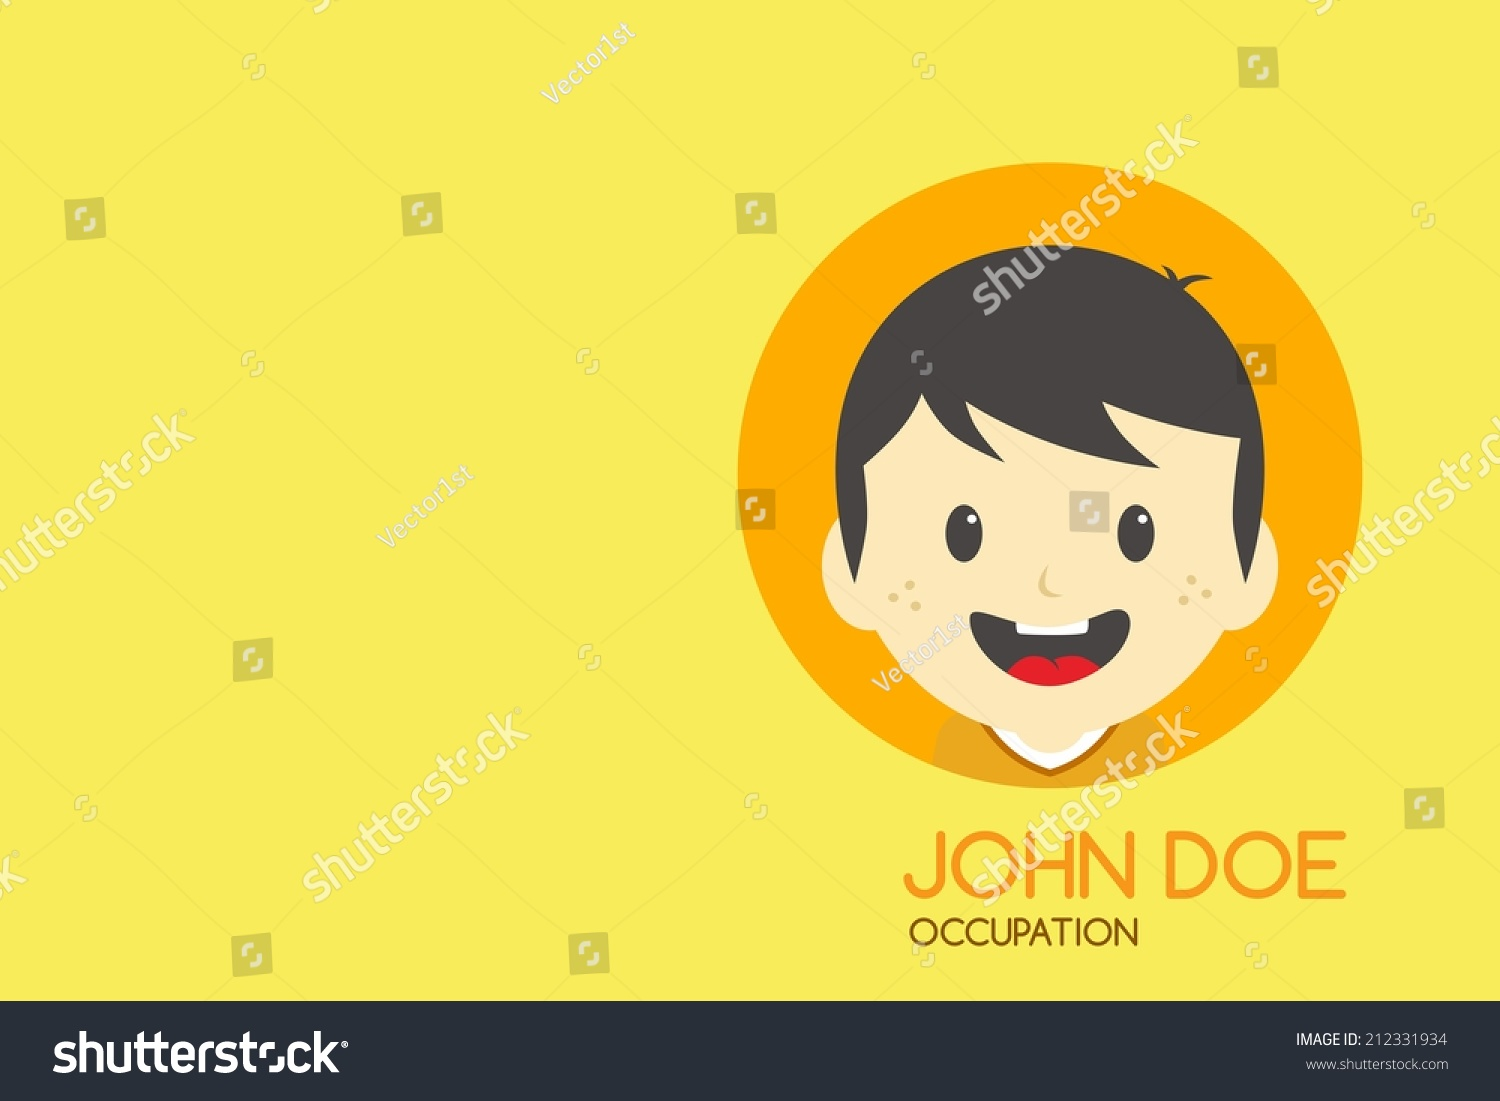 Cartoon Man Theme Business Card Stock Vector 212331934 - Shutterstock